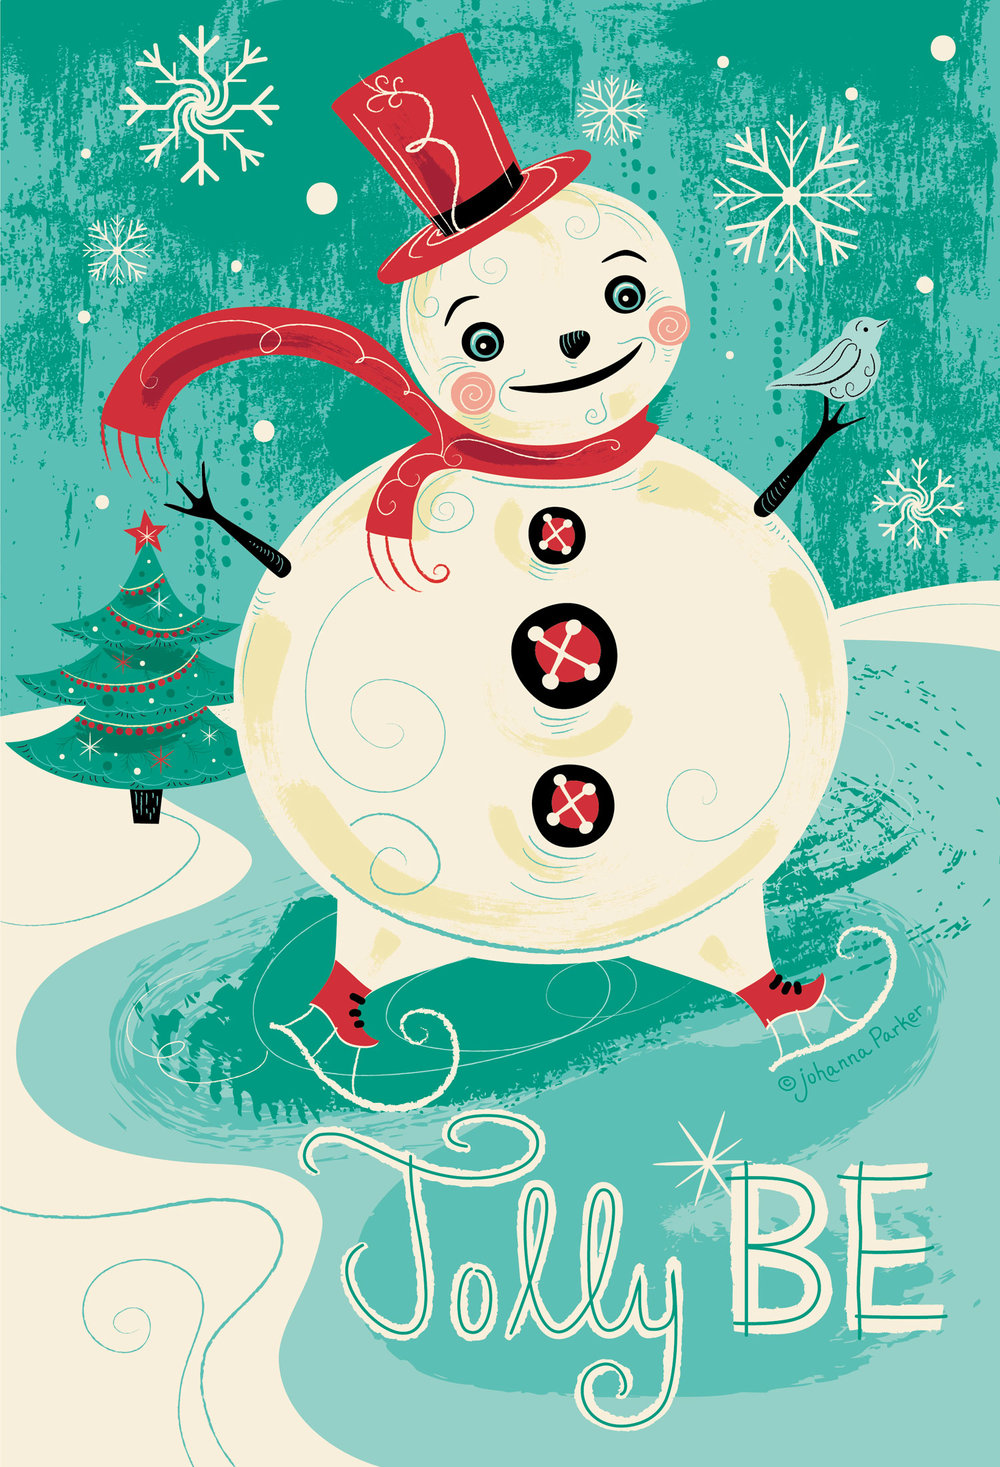 Jolly be skating snowman